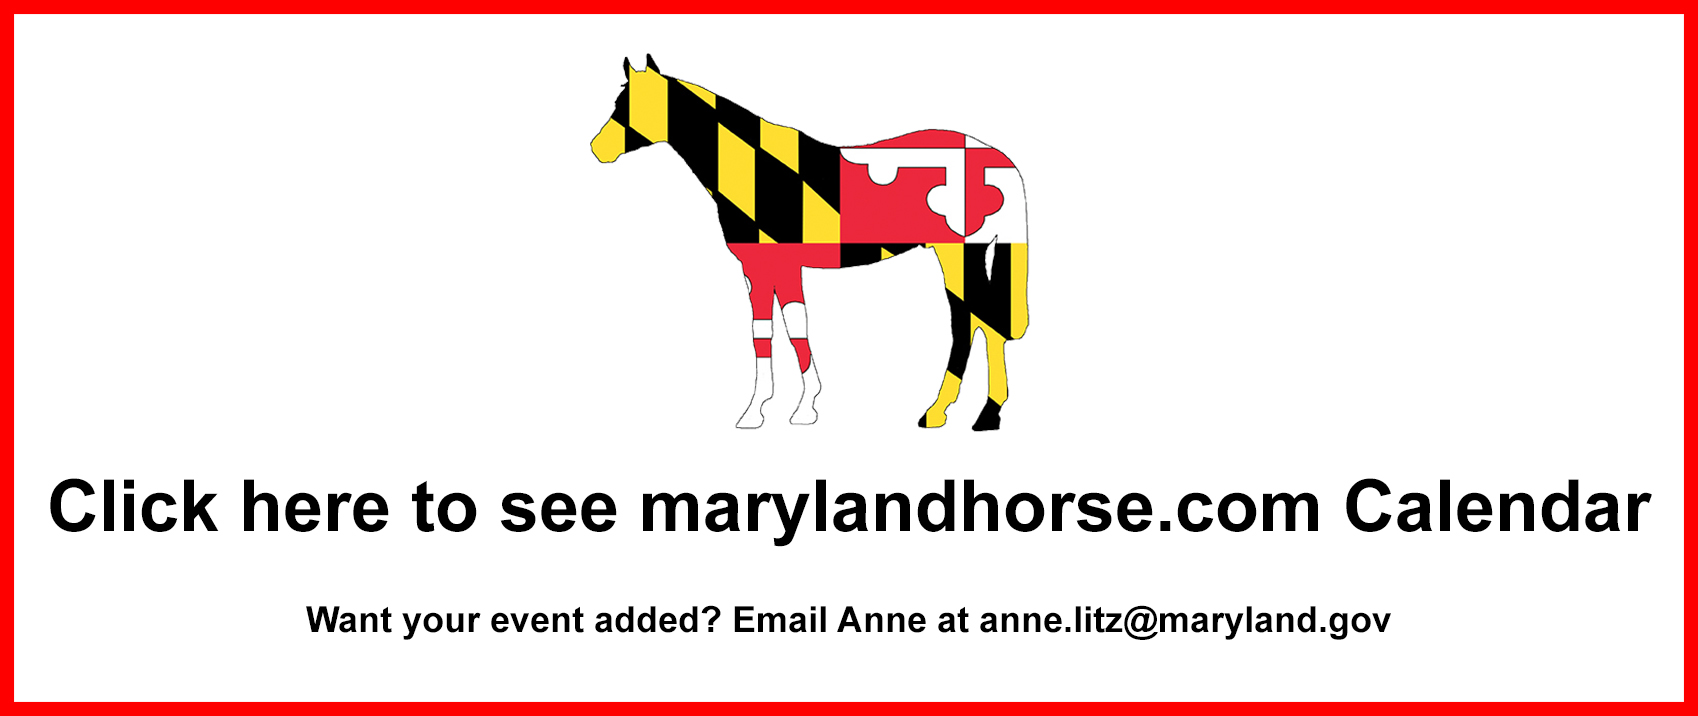 marylandhorse.comCalendar.jpg